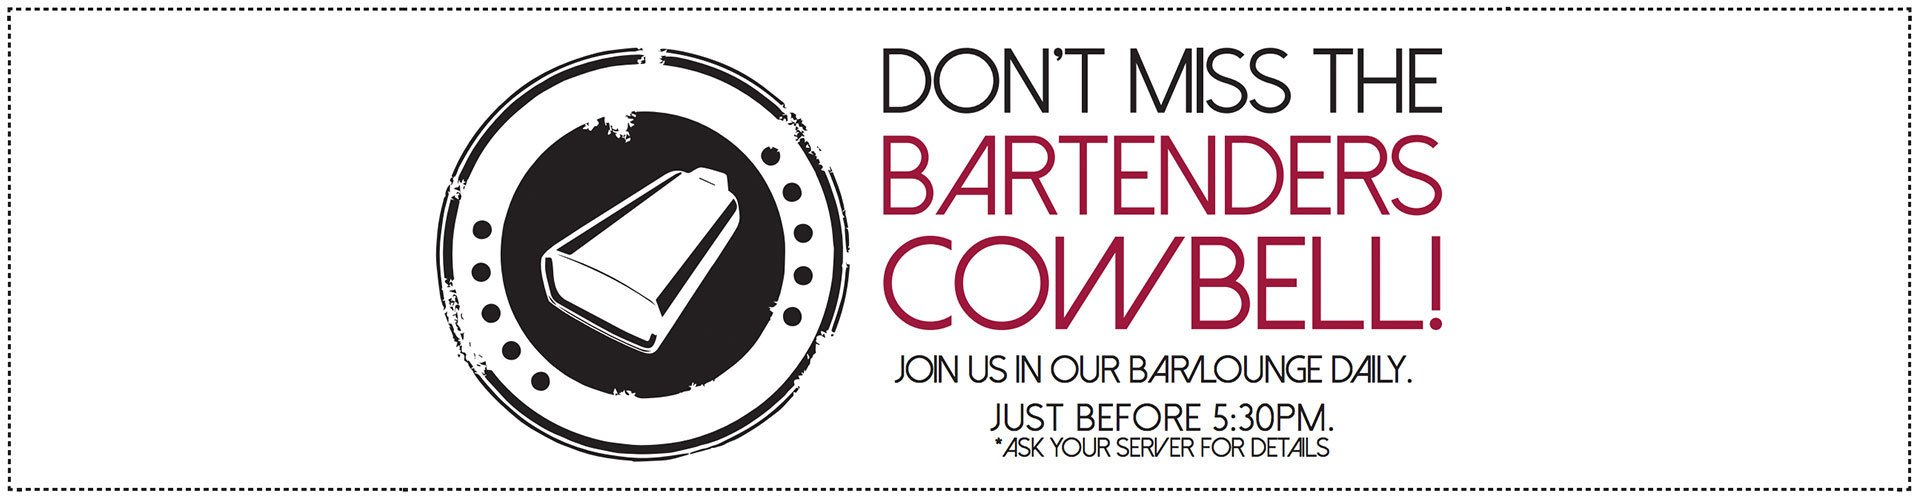 Don't miss the bartenders cowbell